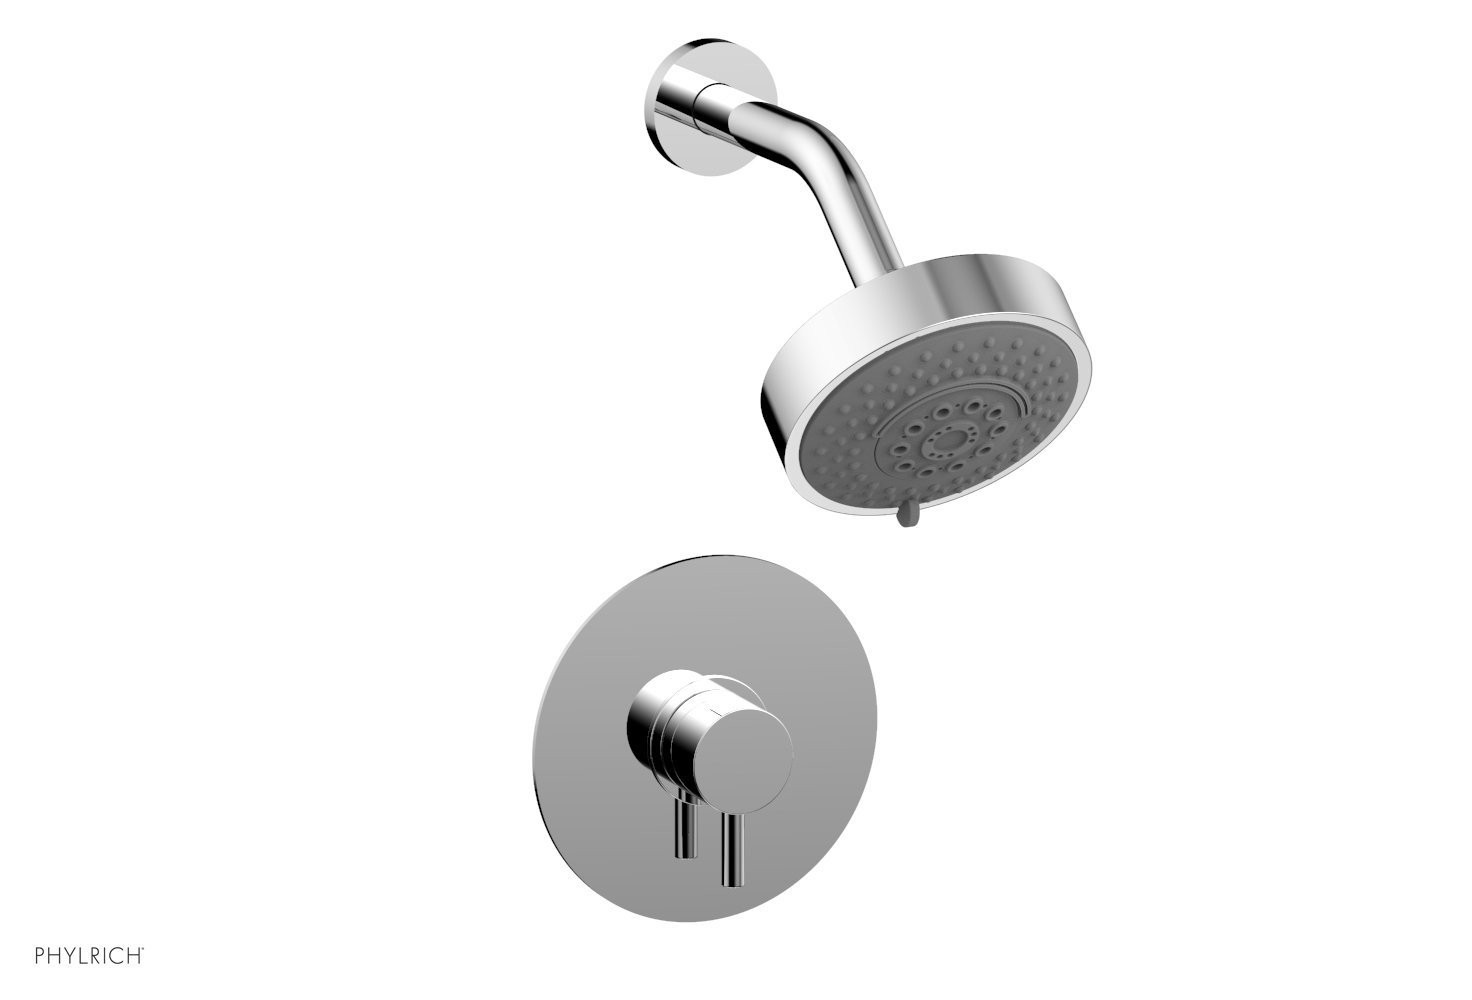 PHYLRICH 230-24 BASIC II WALL MOUNT PRESSURE BALANCE SHOWER SET WITH LEVER HANDLE